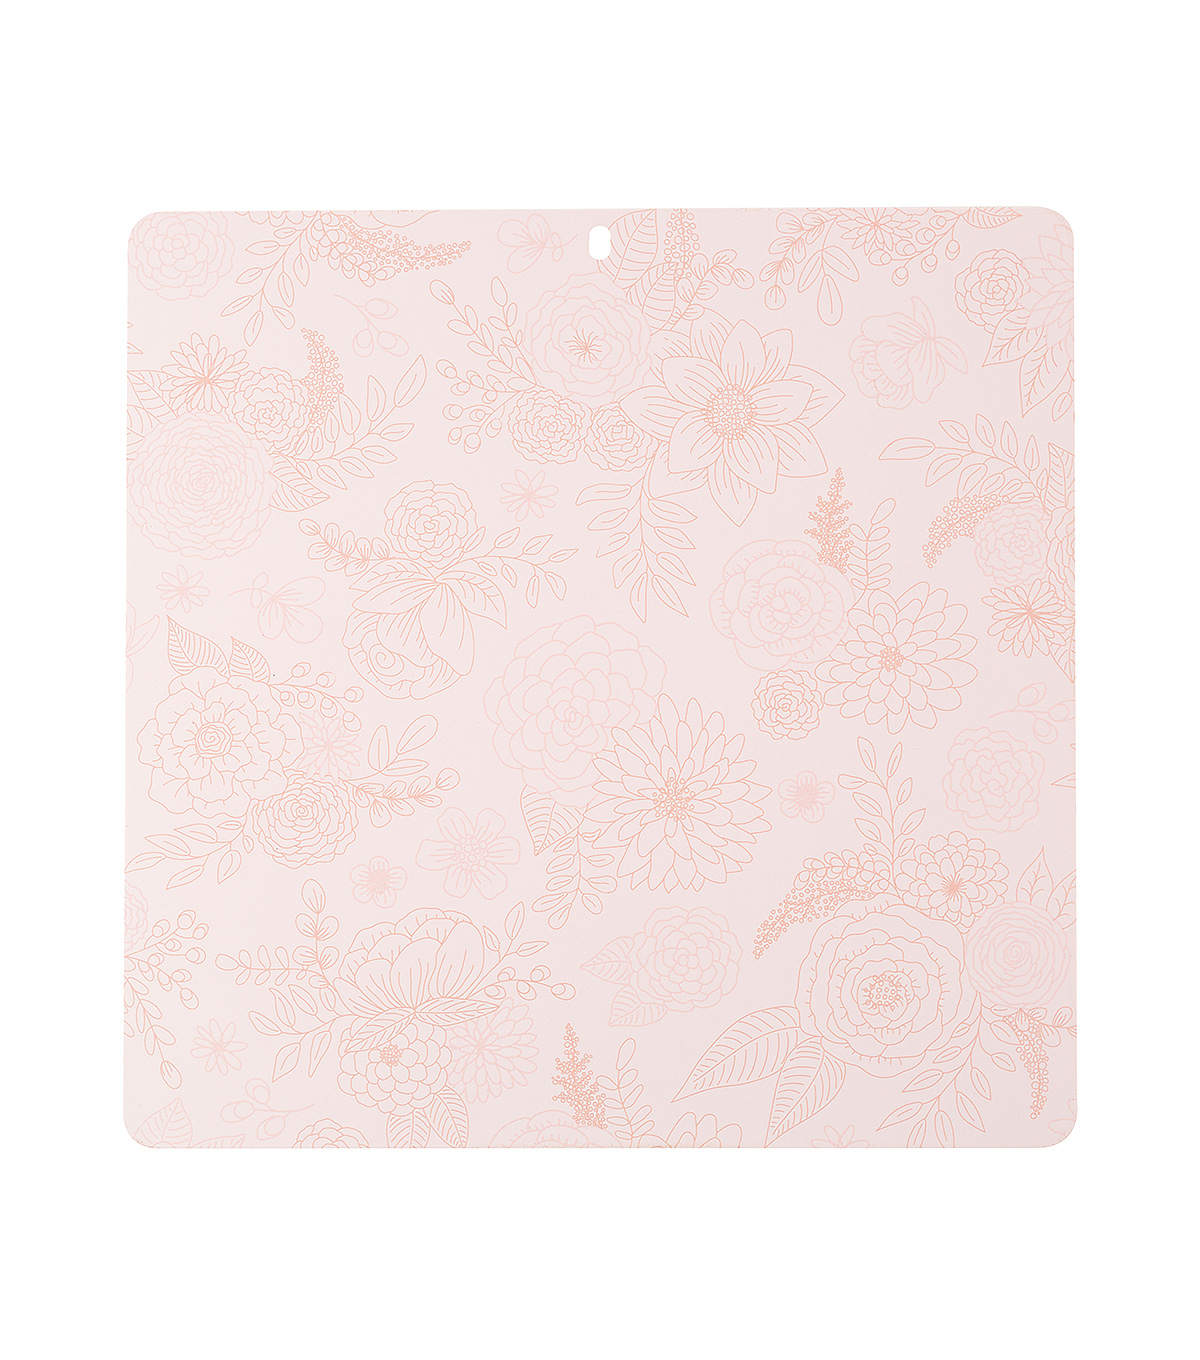 Cricut 12\u0027\u0027x12\u0027\u0027 Decorative Self-Healing Mat-Rose